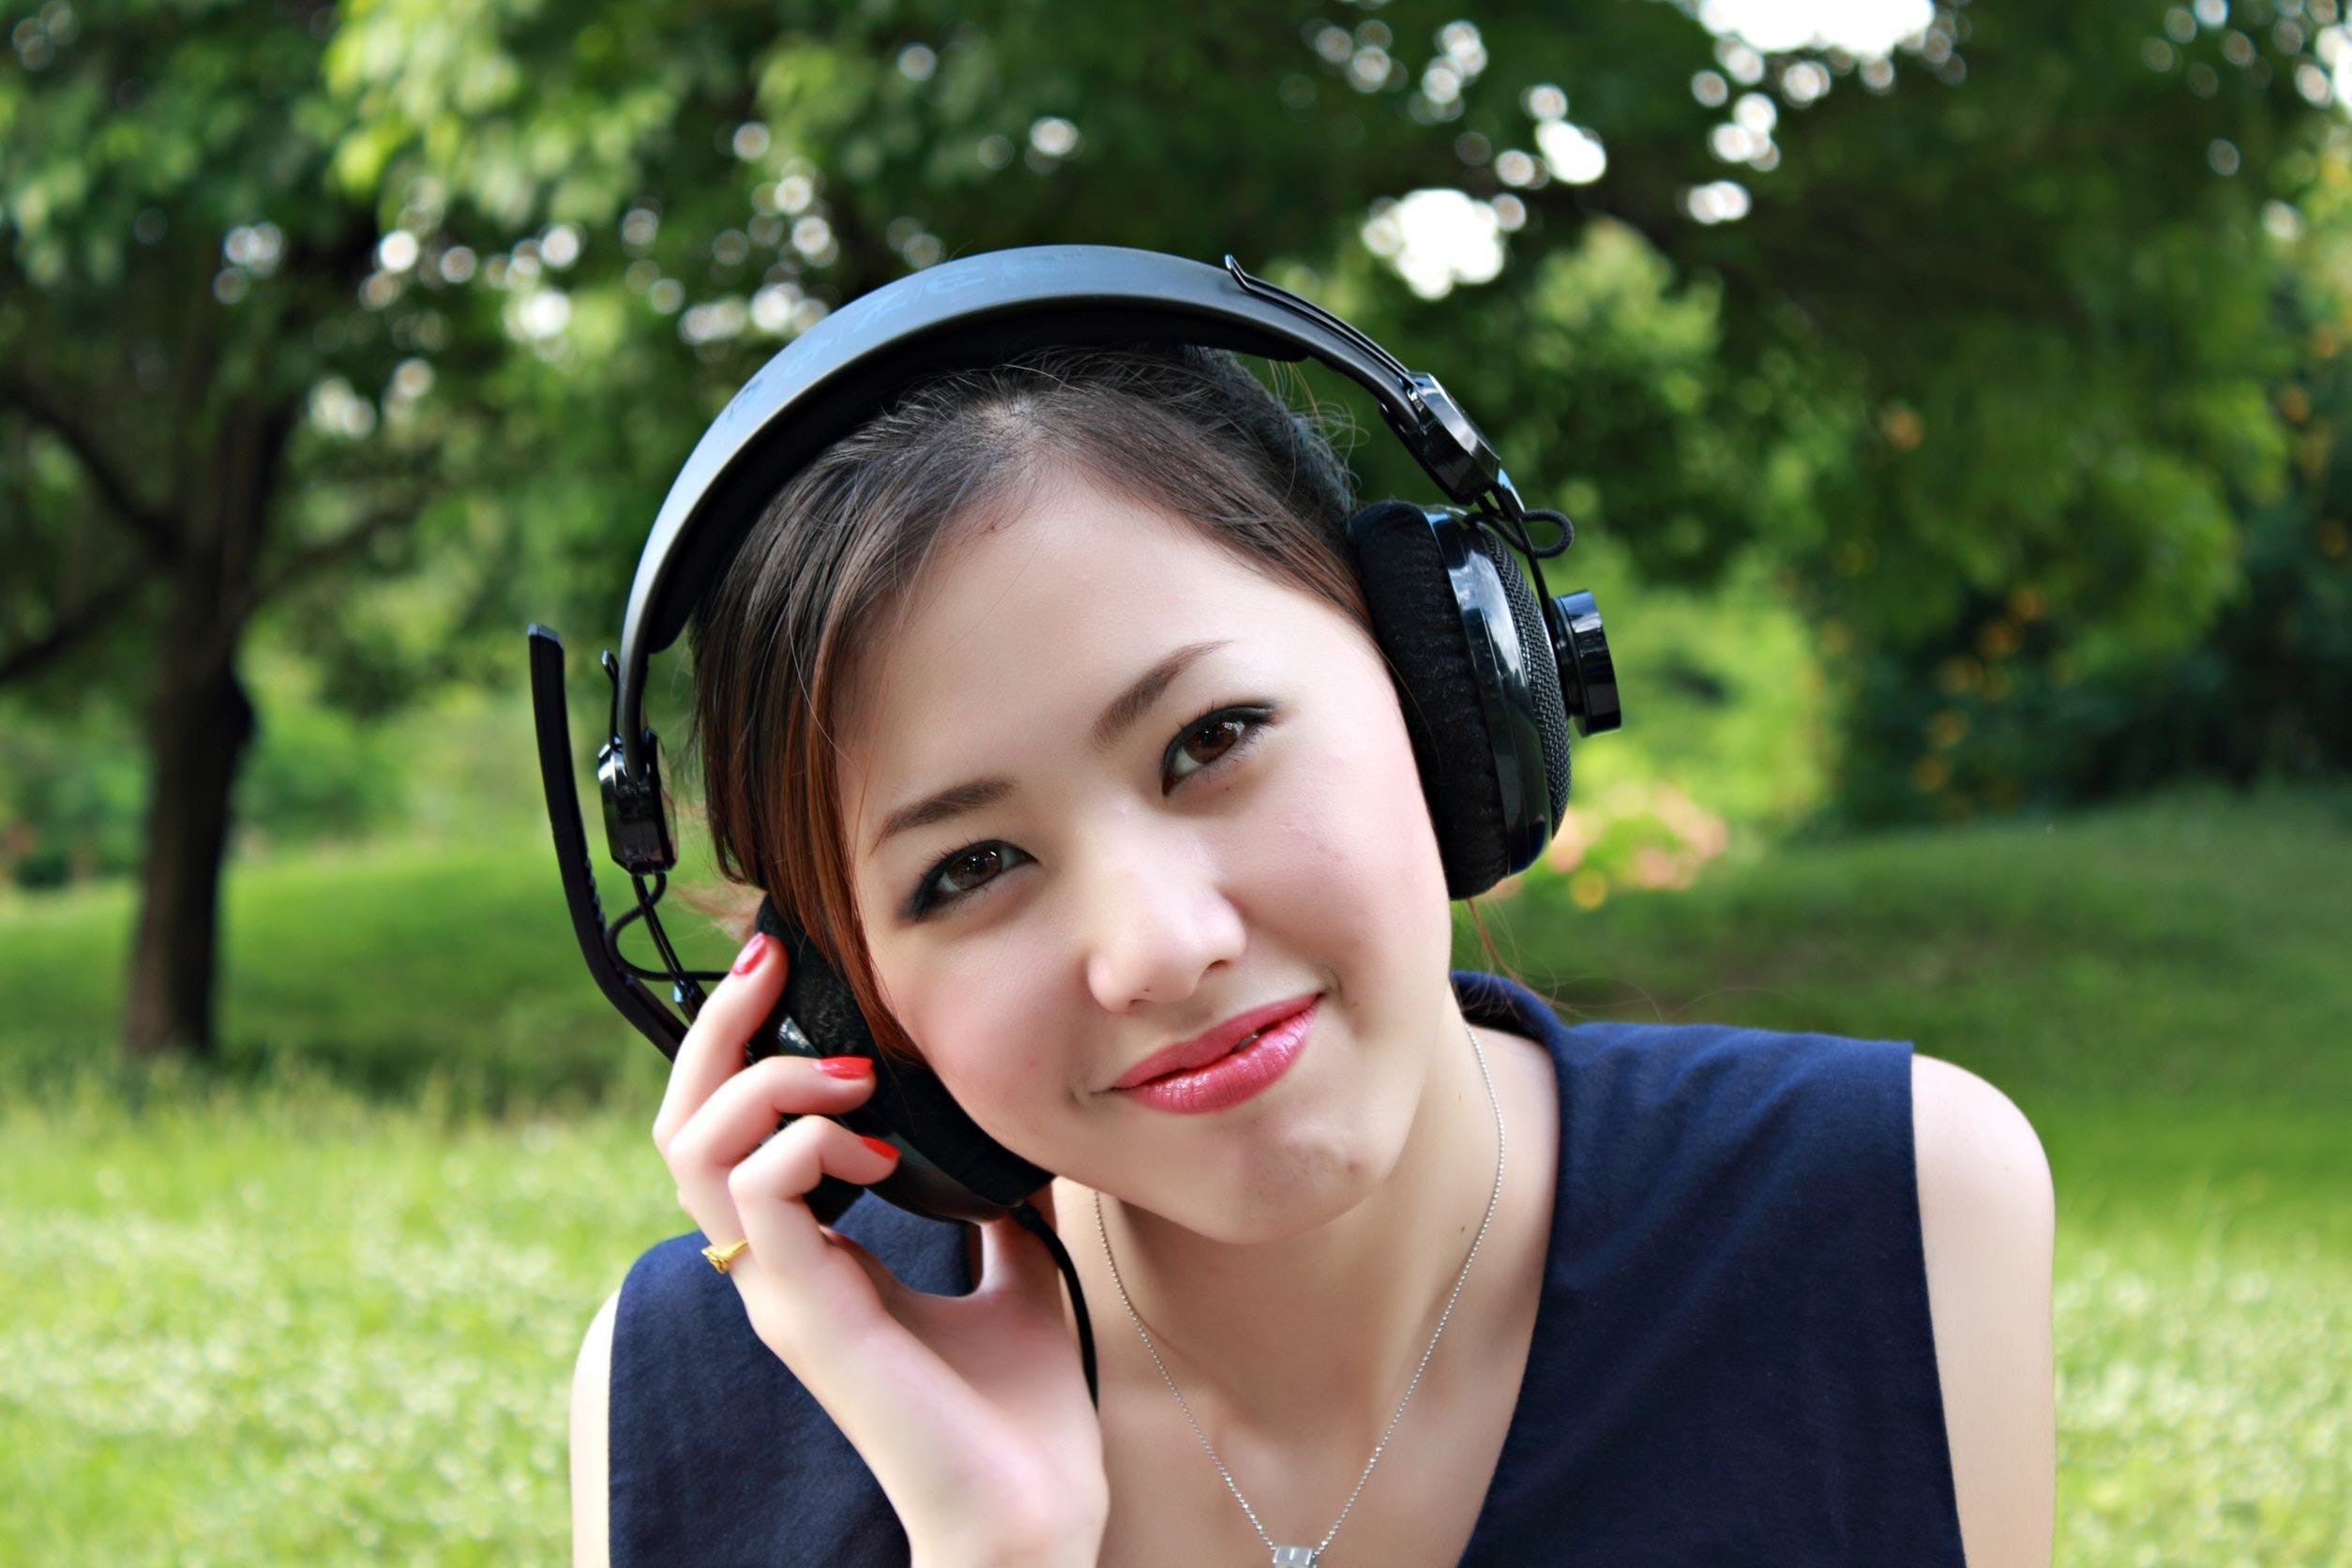 Woman Sitting on Ground While Using Headset